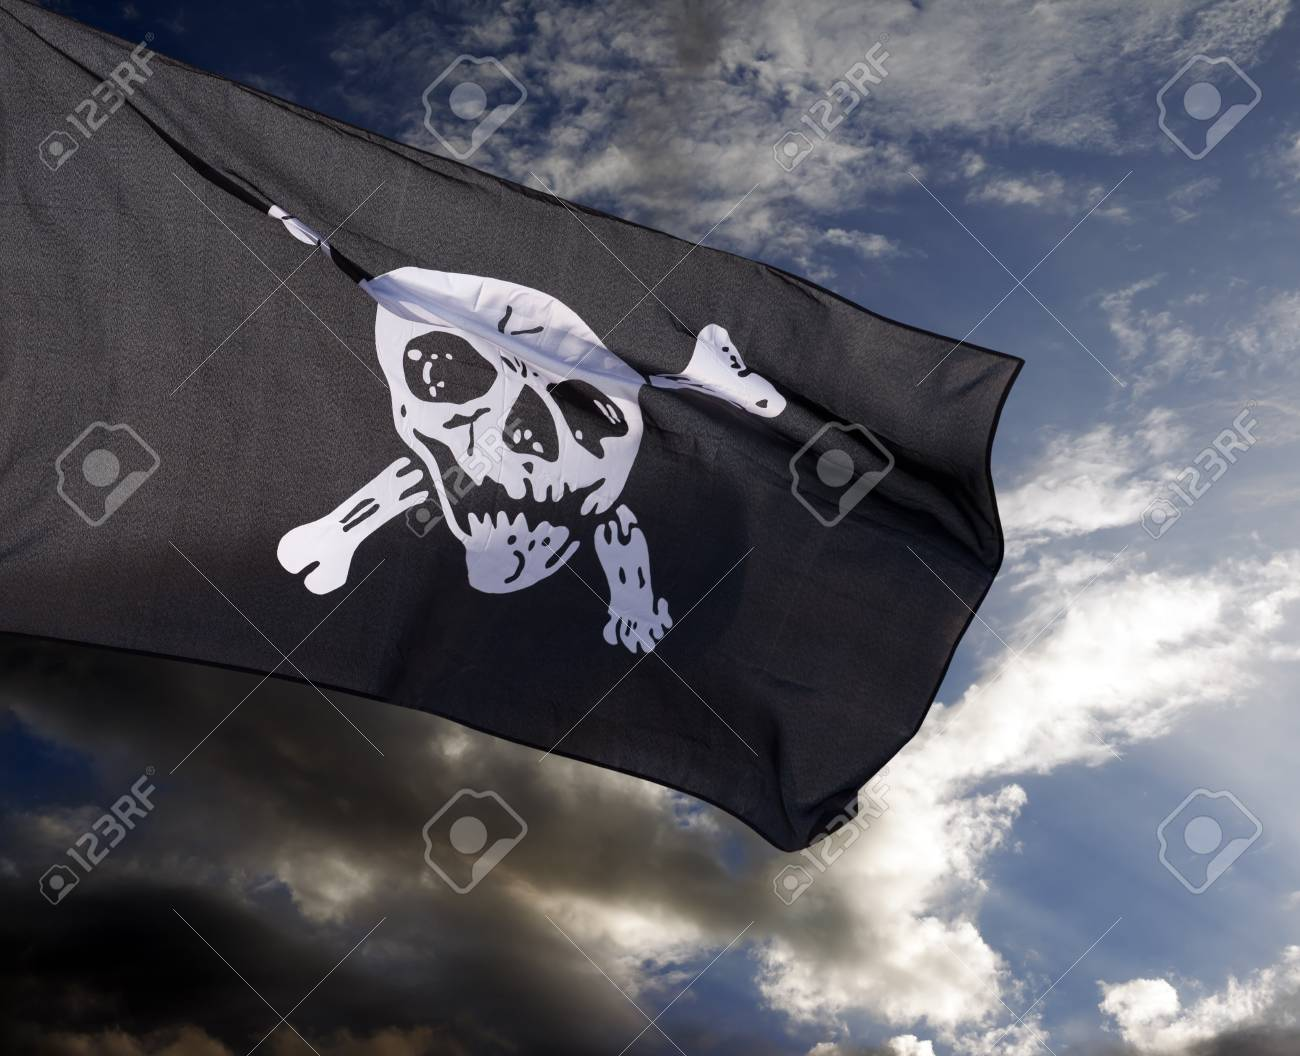 Jolly Roger (pirate flag) against storm clouds Stock Photo - 25113329